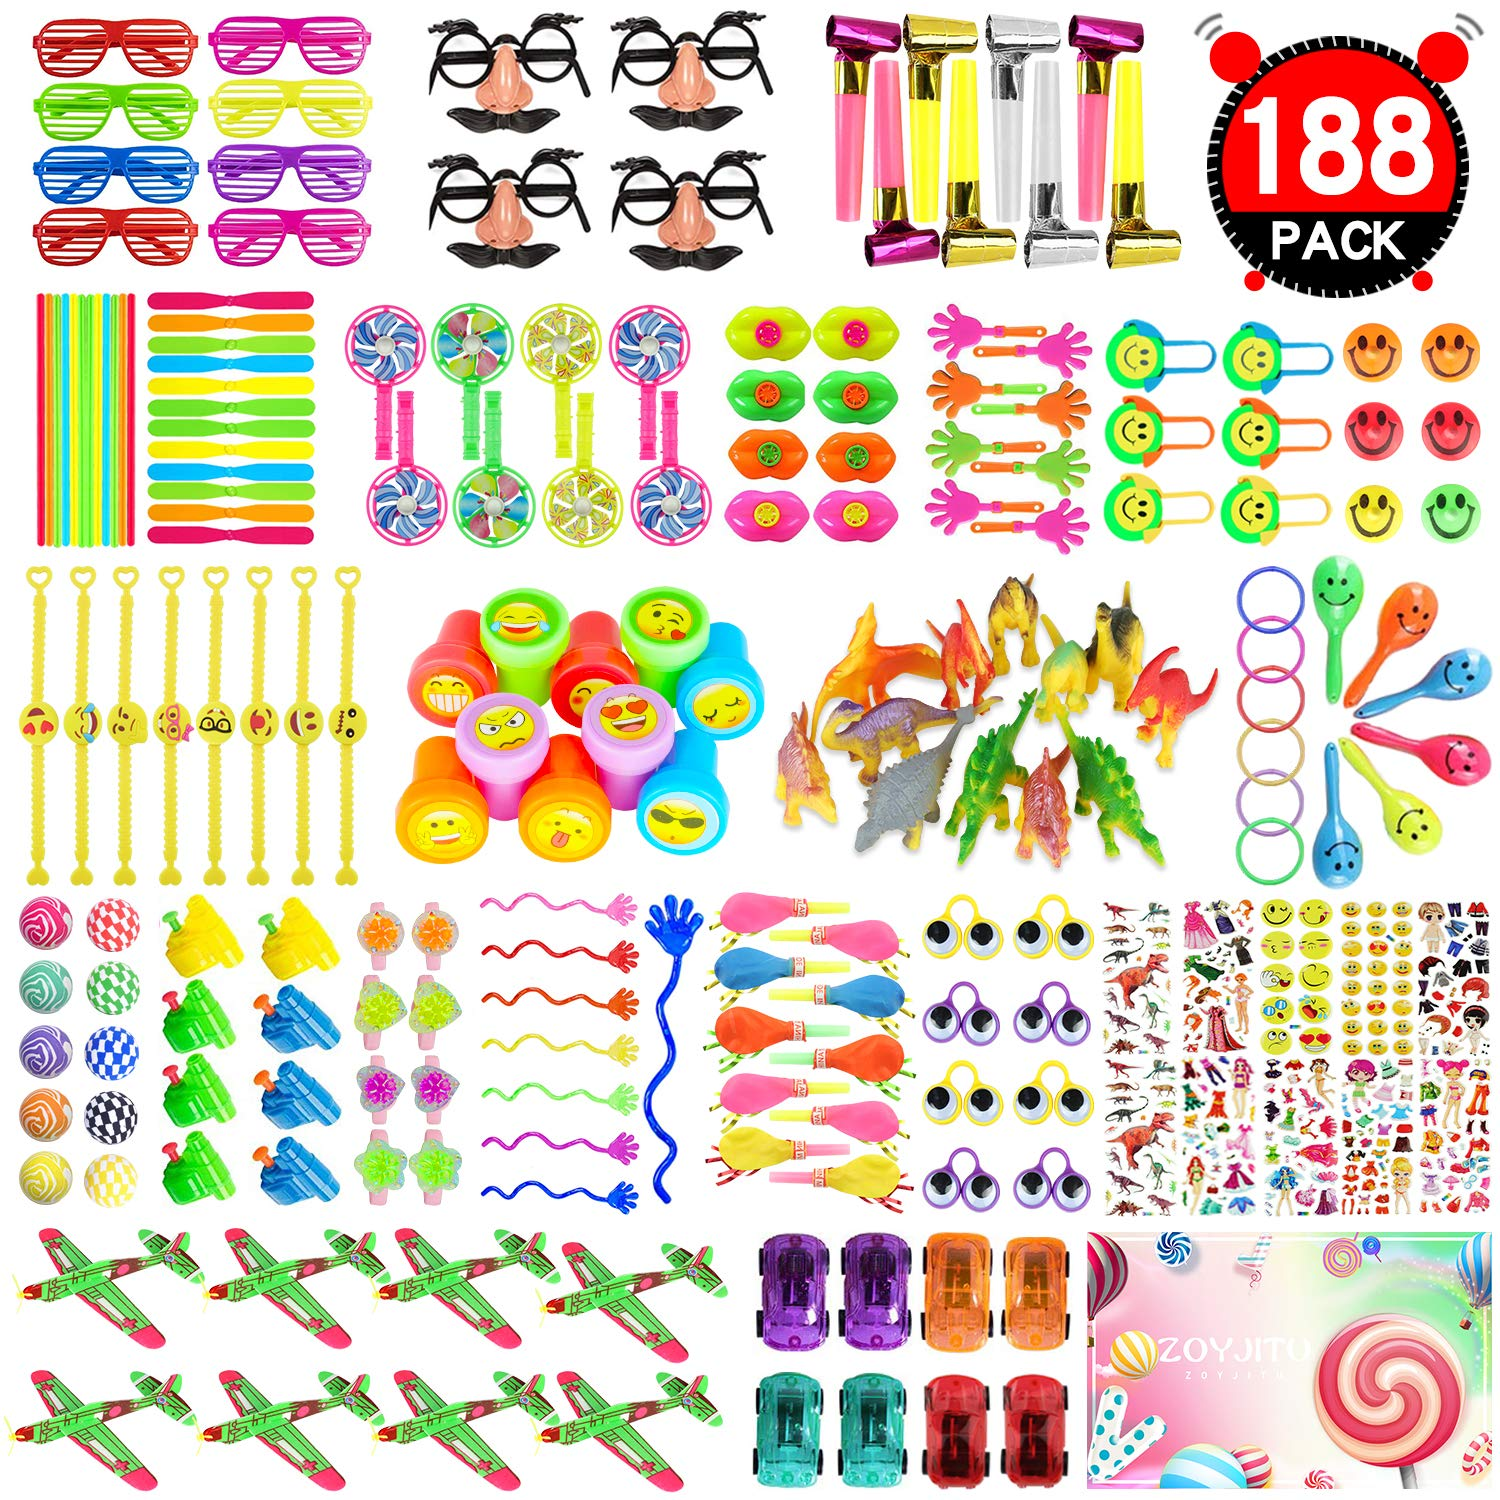 ZOYJITU Party Prize,Party Favor for Kids Toy Assortment, 188PCS Treasure Box Prizes for Classroom,Birthday Party, Kids Birthday Party Favors for Goodie Bag Fillers, Assorted Pinata Fillers by ZOYJITU